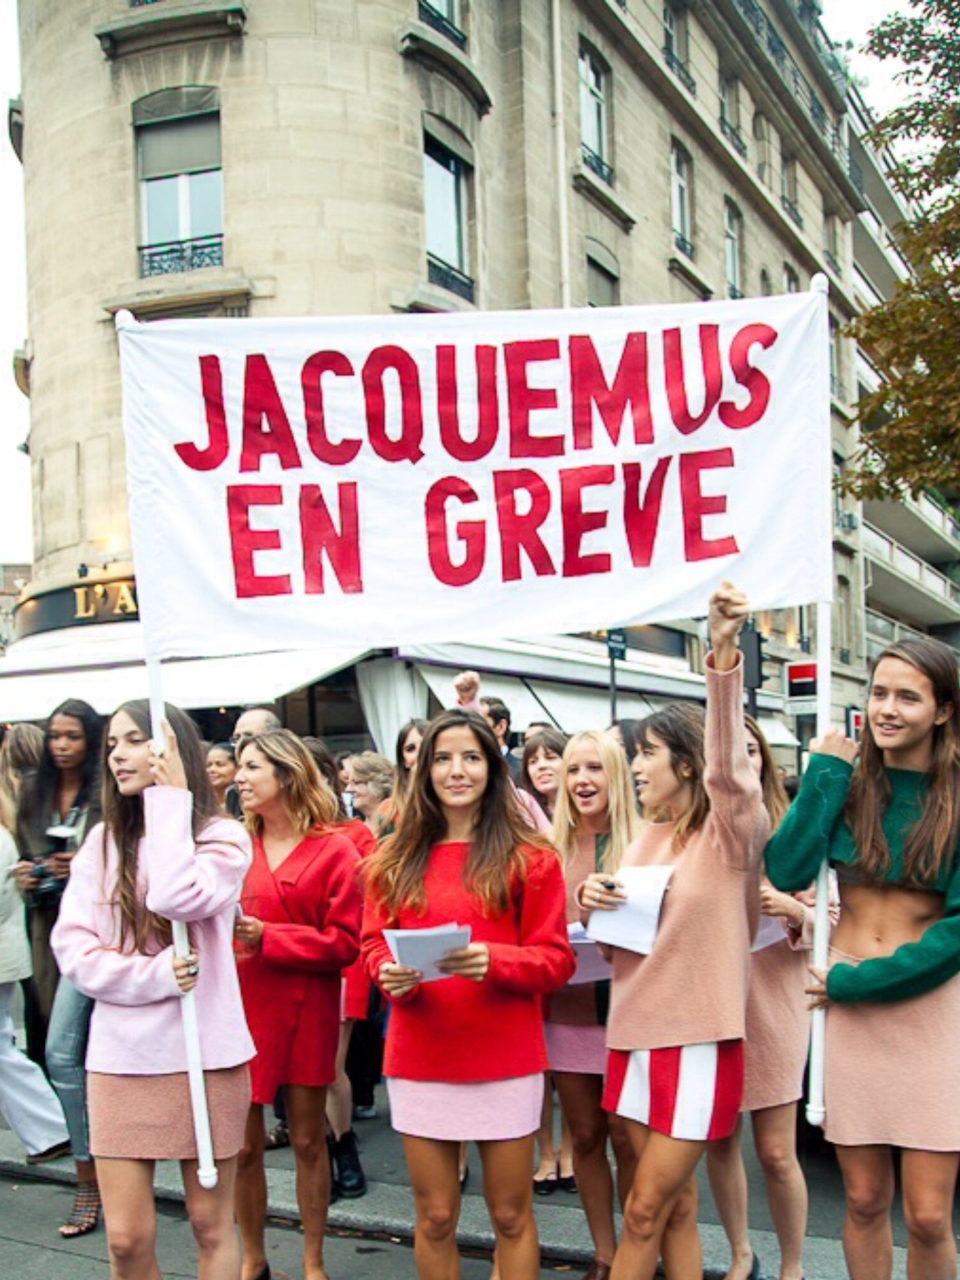 Jacquemus En Greve – Design & Culture by Ed